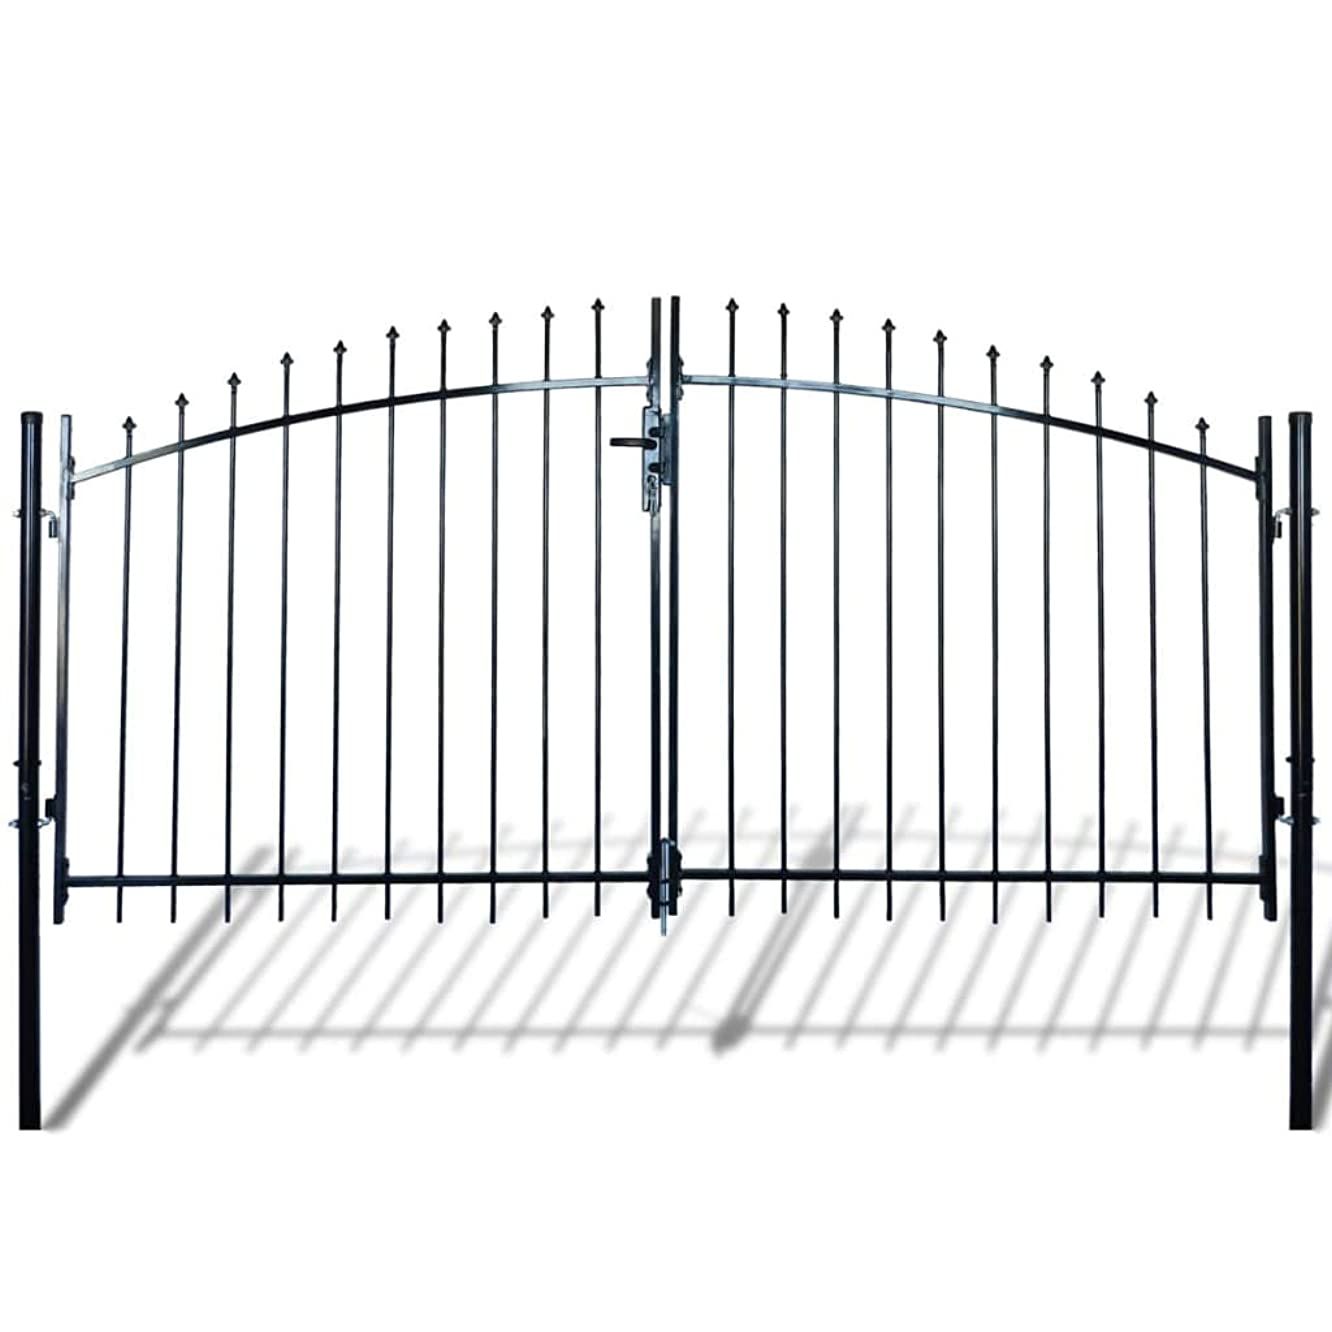 Hardware Fencing & Barriers Gates Double Door Fence Gate with Spear Top 10' x 6'